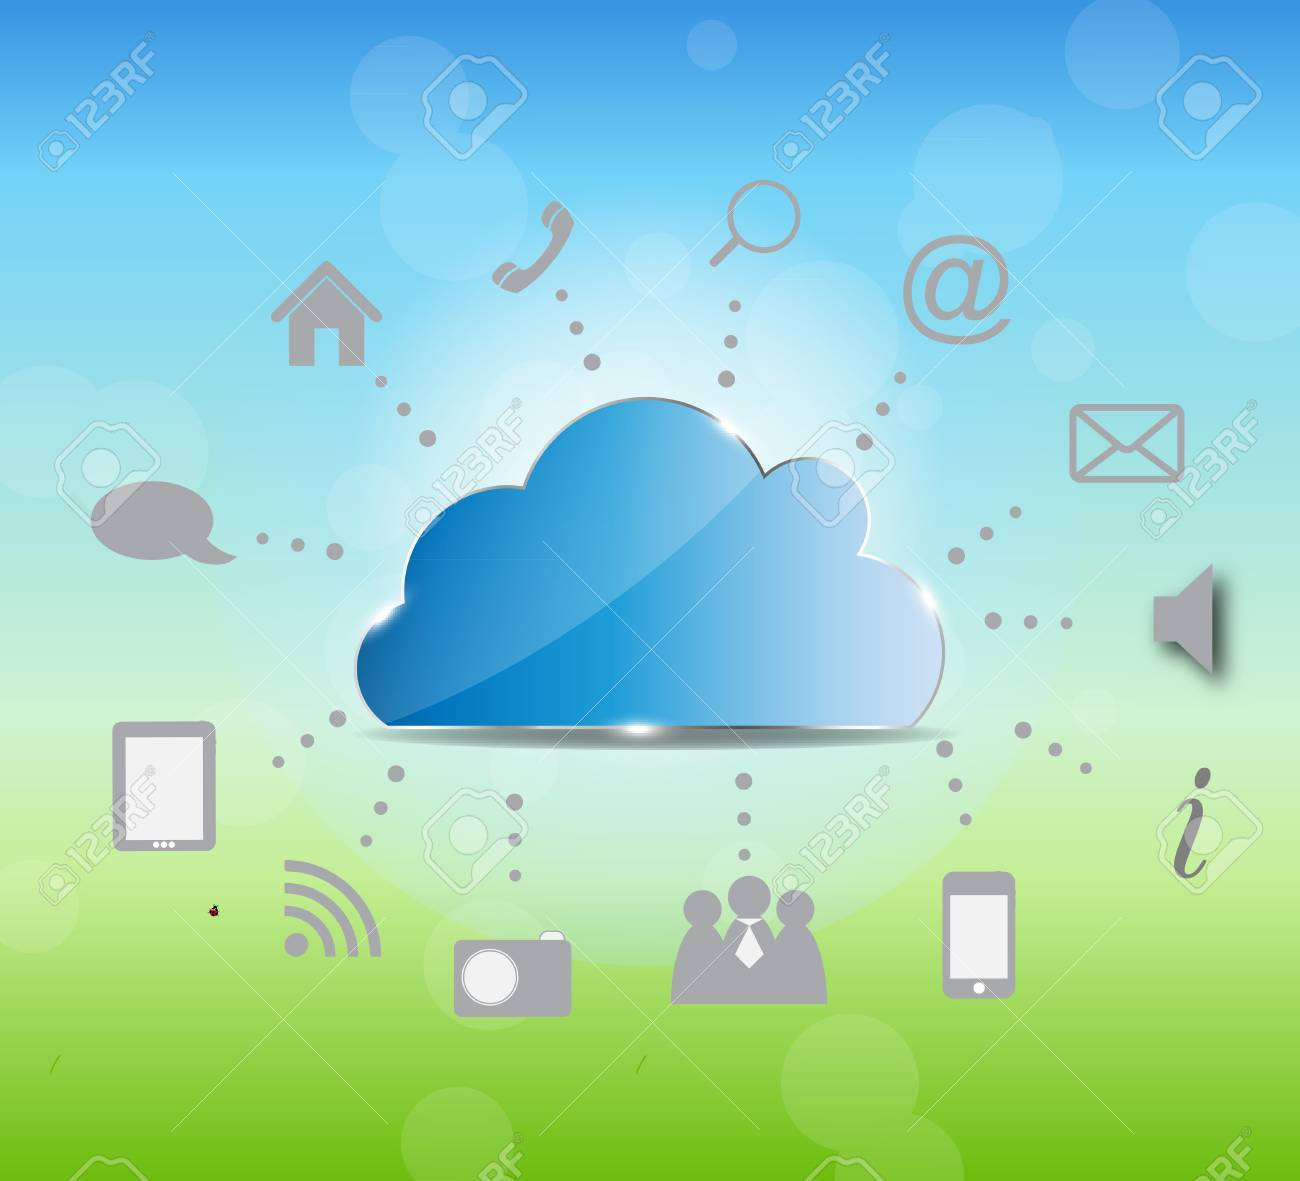 Cloud computing illustration on nature background Stock Vector - 19498260